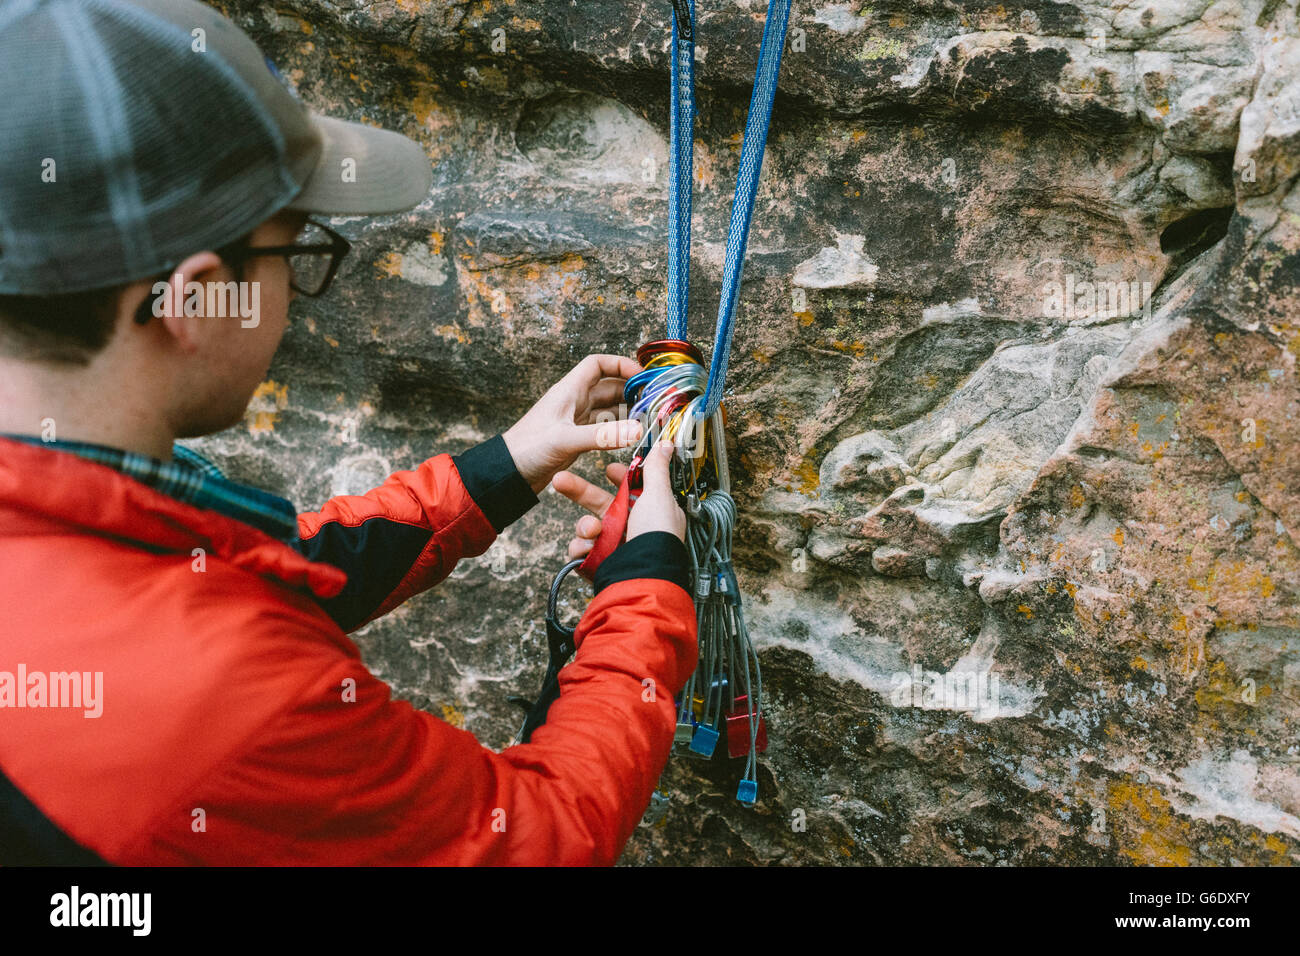 A climber organizing gear in Red Rock Canyon, Nevada - Stock Image